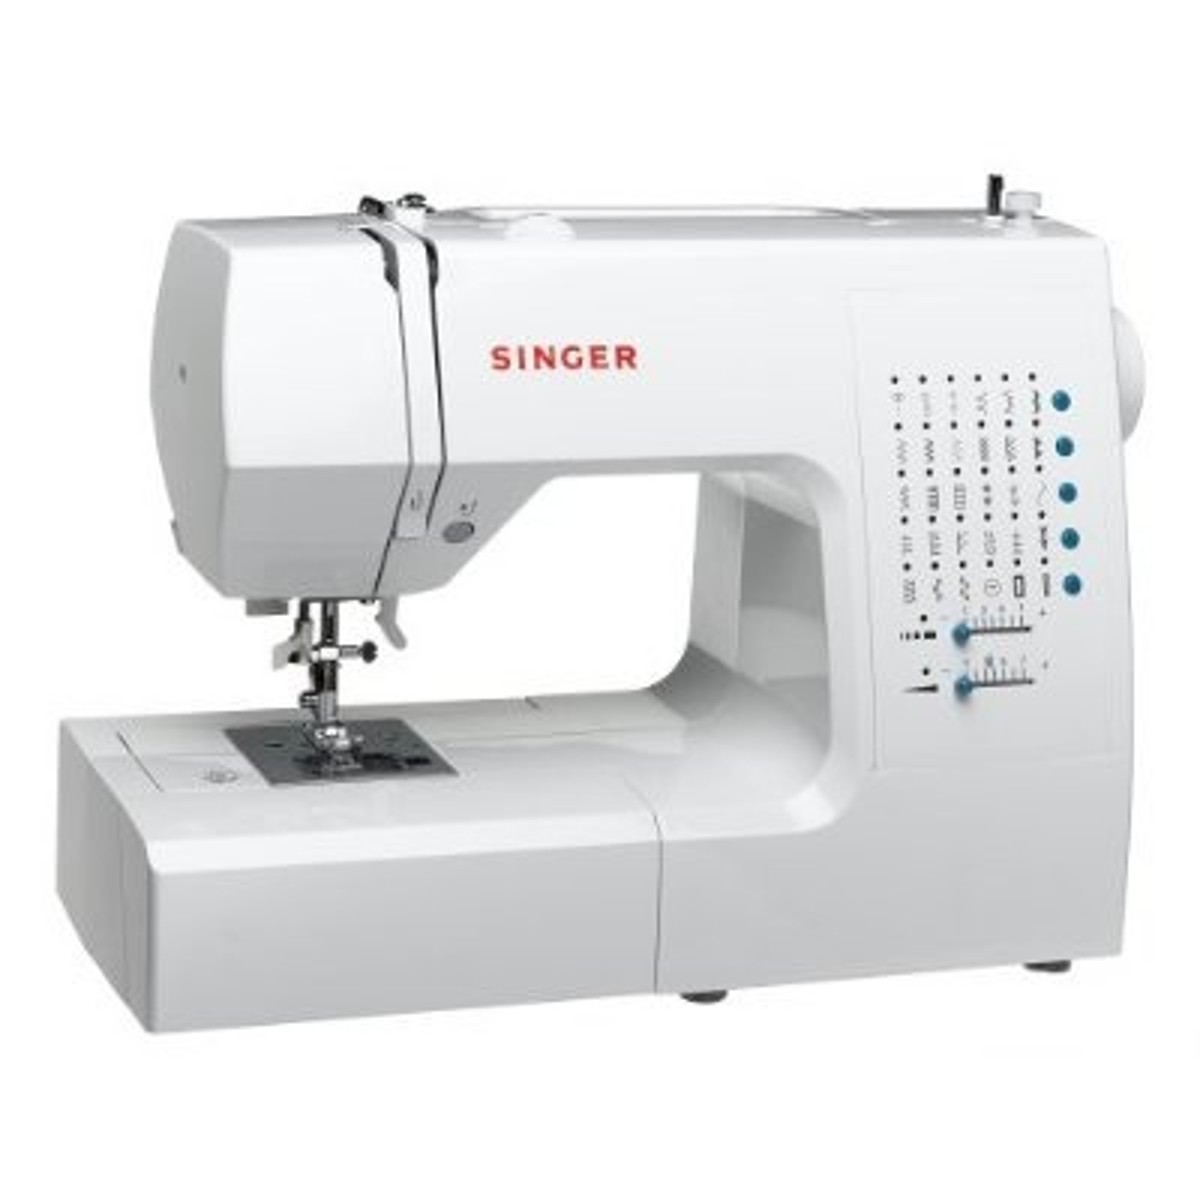 Singer 7442 Sewing Machine